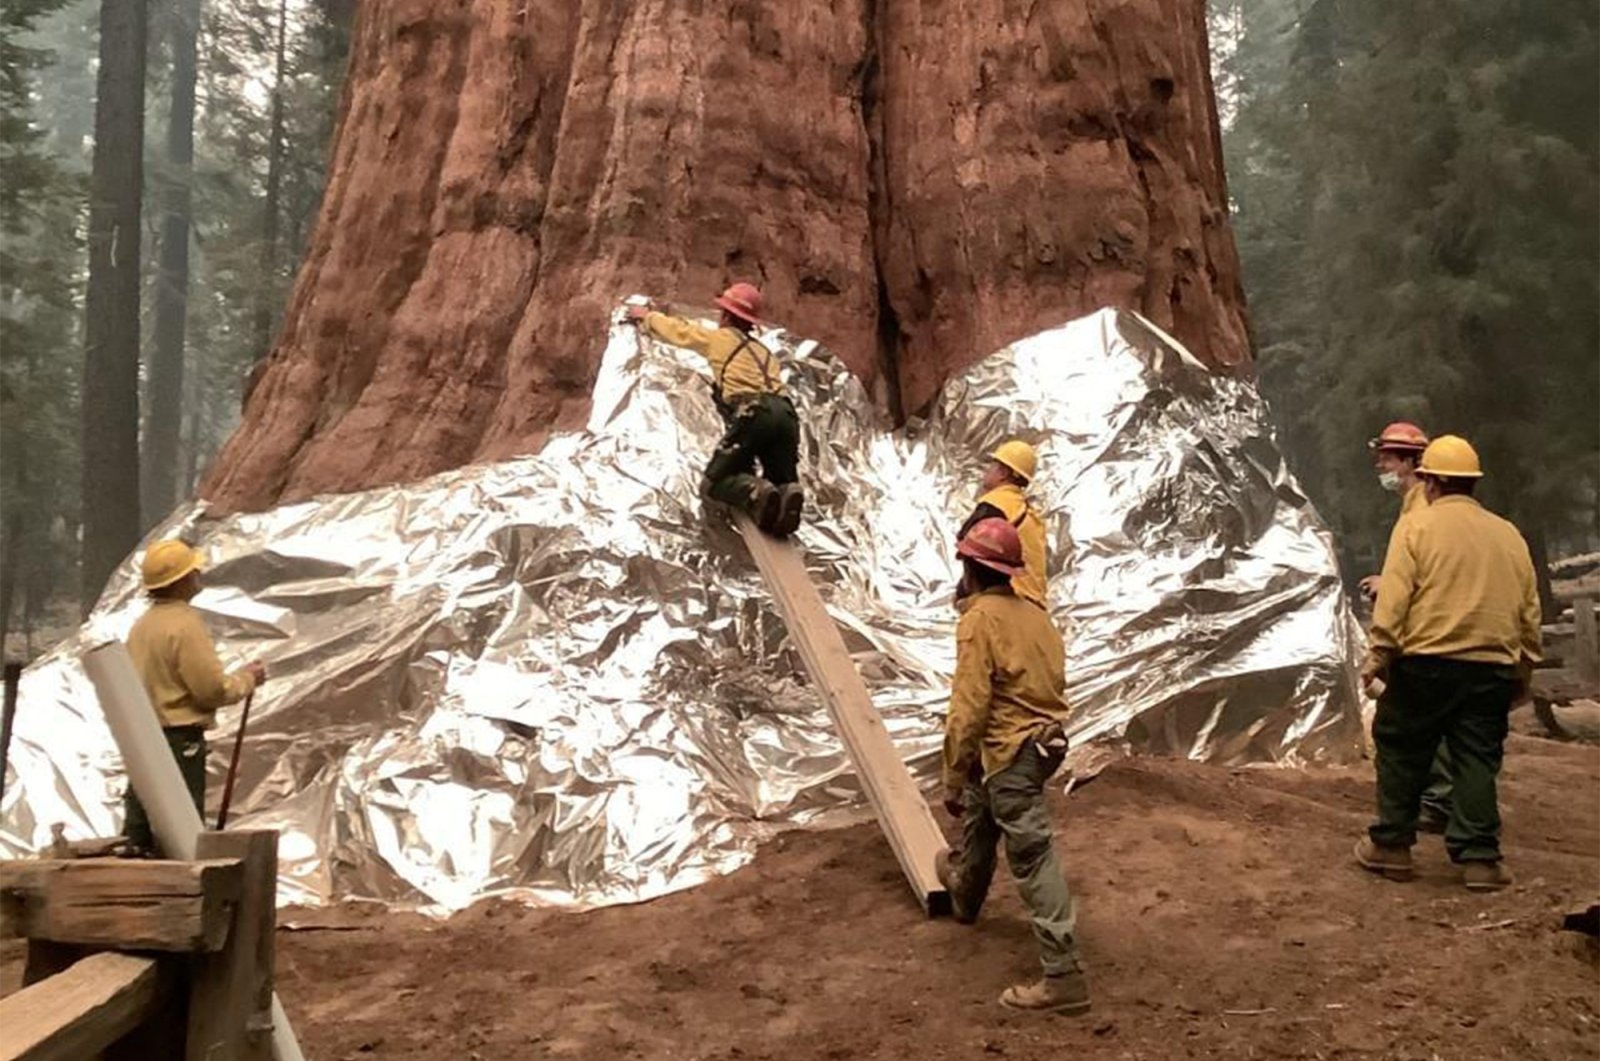 Firefighters wrap the base of the giant sequoia known as General Sherman with a fire-resistant blanket to protect it from the intense heat of approaching wildfires at Sequoia National Forest in California, U.S., Sept. 17, 2021. (National Park Service via AFP)